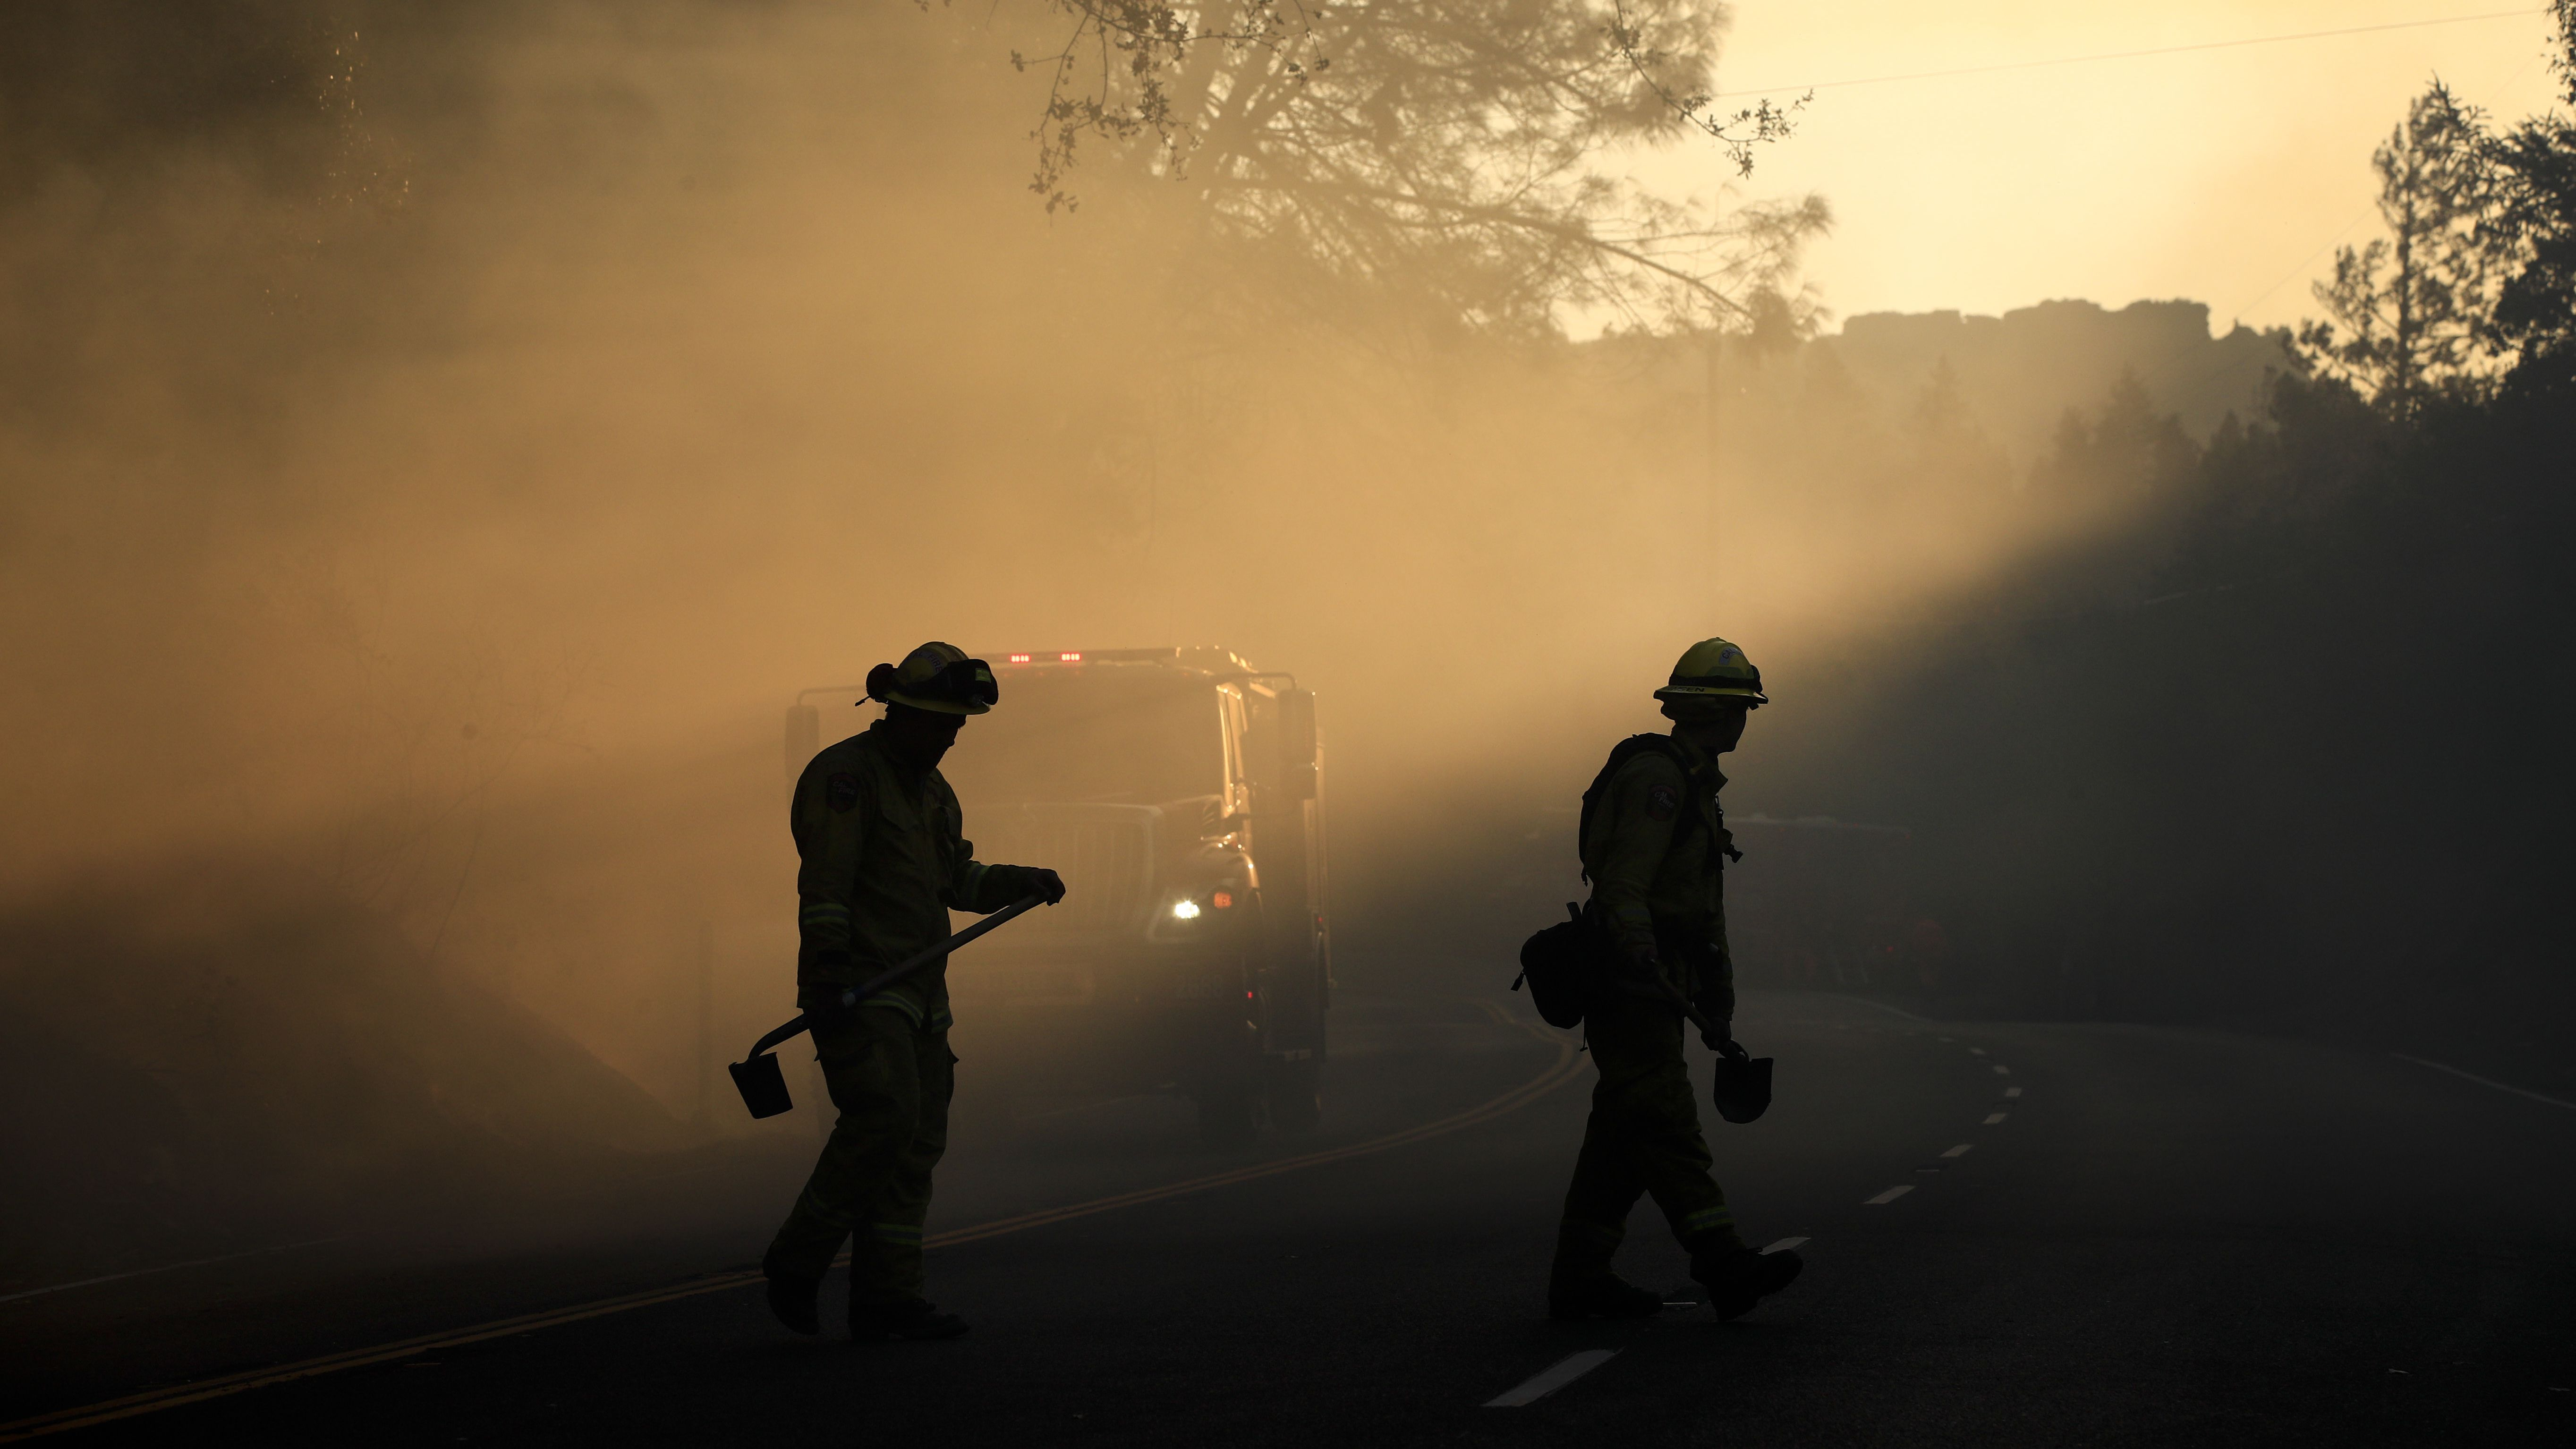 Two firefighters watch for spot fires Friday, Oct. 13, 2017, near Calistoga, Calif. Firefighters gained some ground on a blaze burning in the heart of California's wine country but face another tough day ahead with low humidity and high winds expected to return.